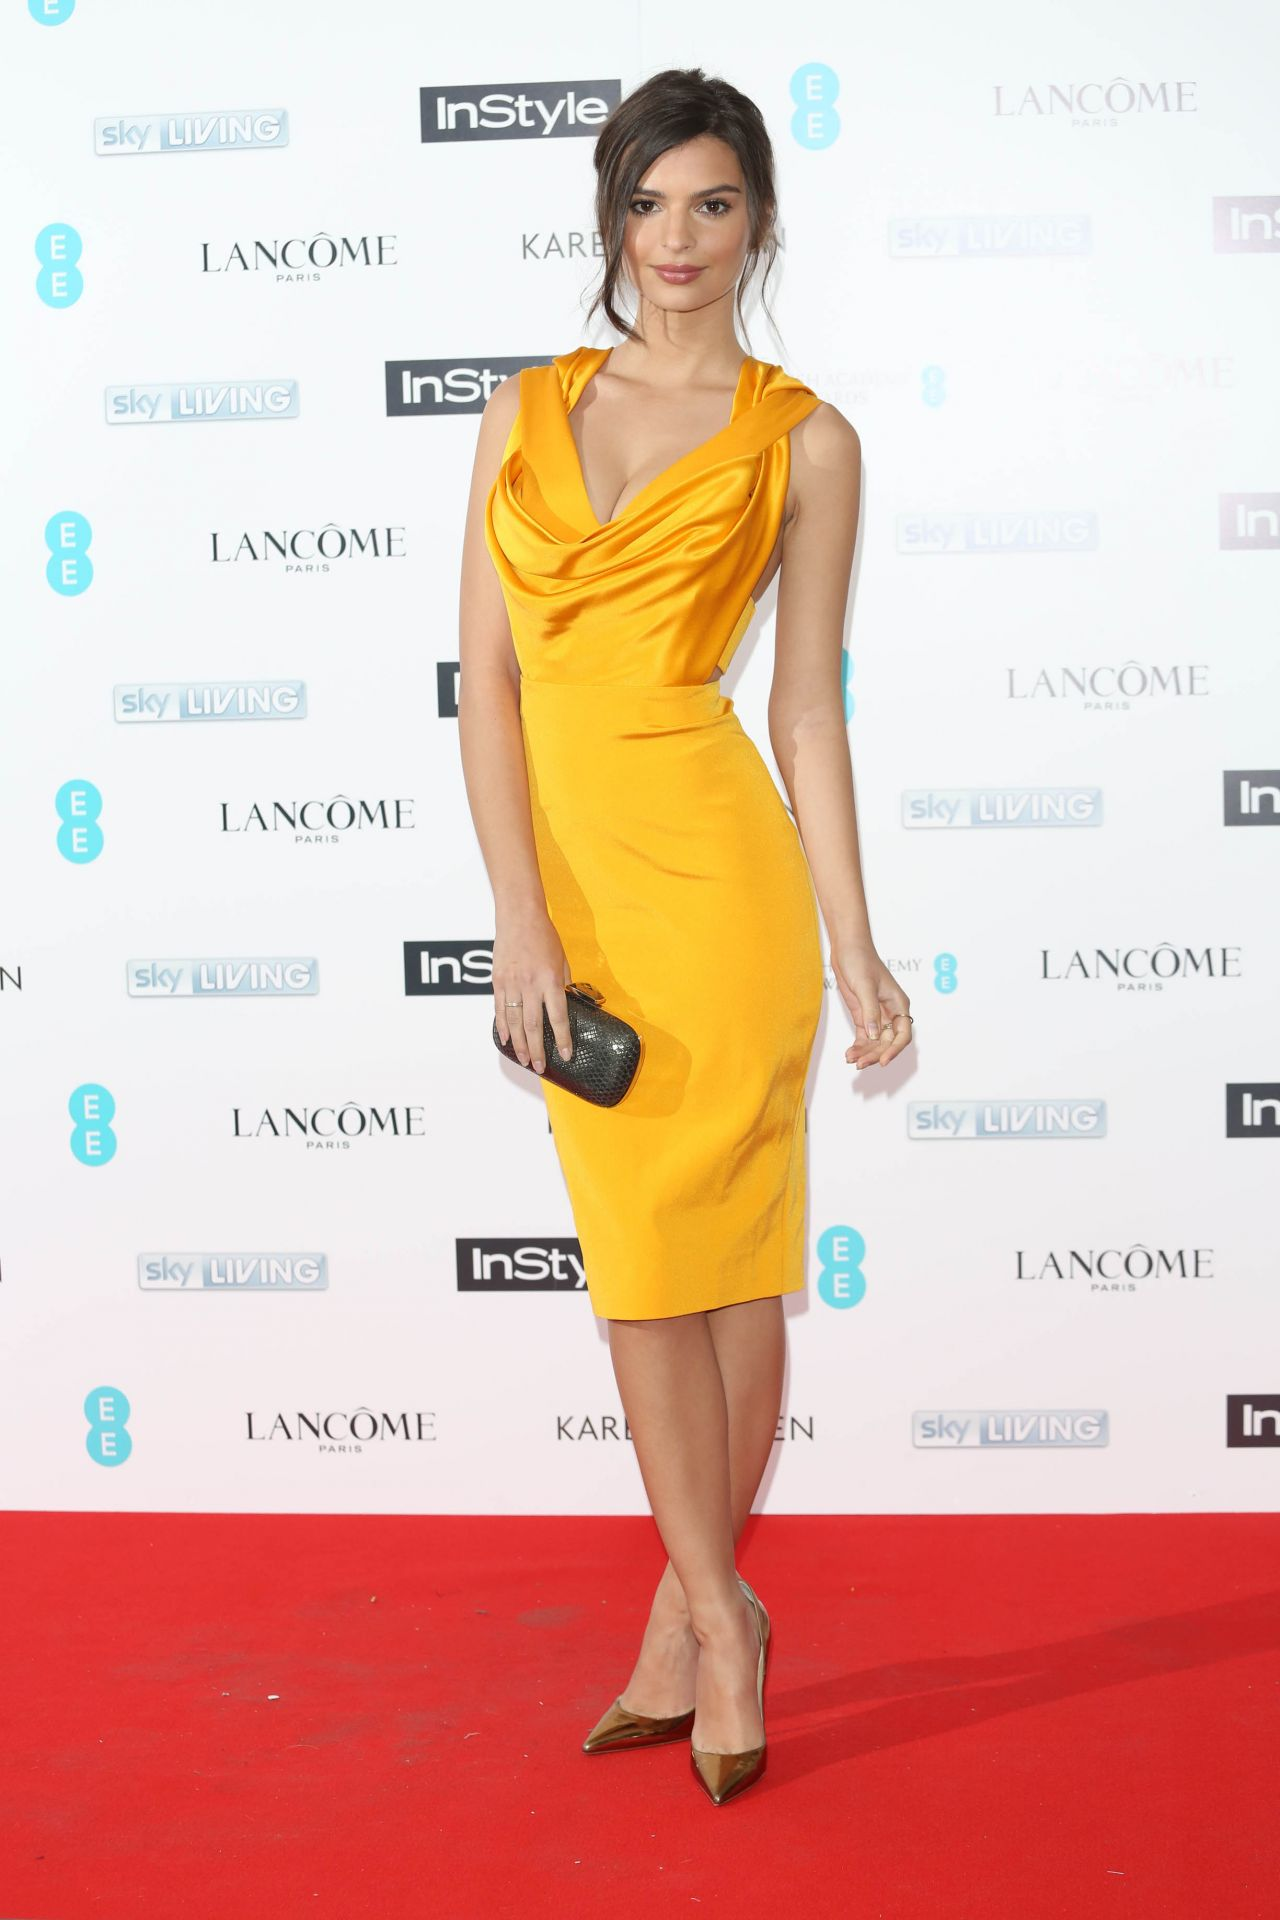 Emily Ratajkowski at pre-BAFTA InStyle & EE Rising Star Bash in London, Feb. 2015